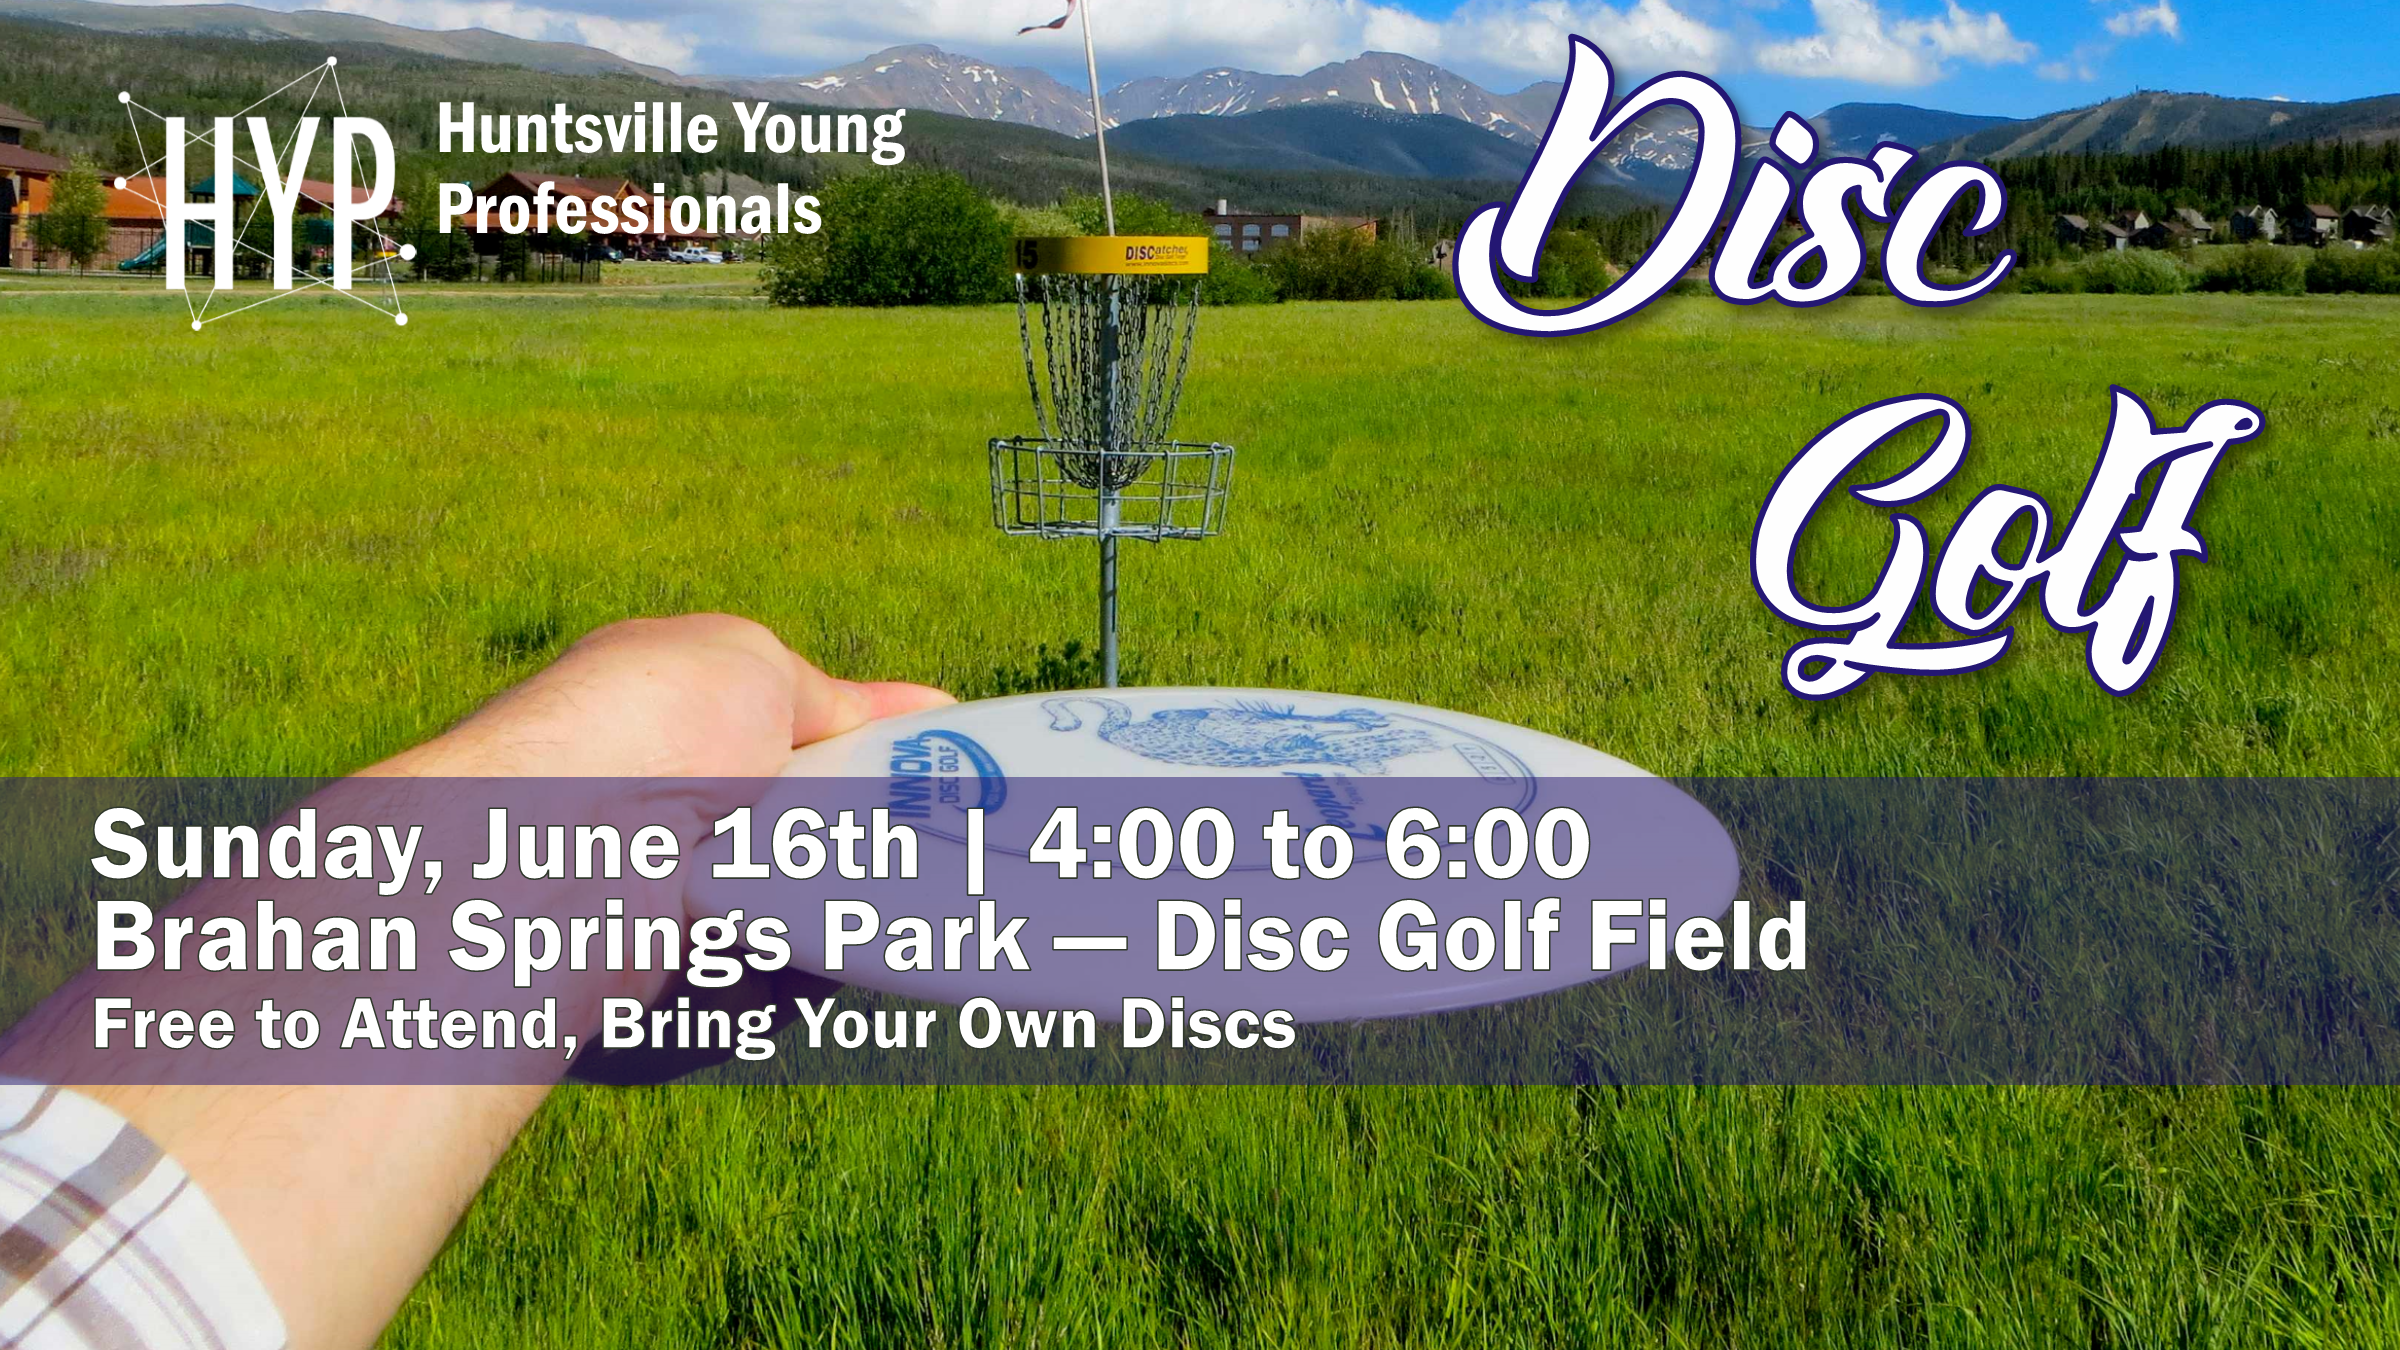 Sport 4 is going to be Disc Golf. Nothing like an easy Sunday stroll around the disc golf course. This event is free to attend, but you will need to bring your own discs or borrow some from a friend. Be sure to join the Facebook  Event  to stay up to date.